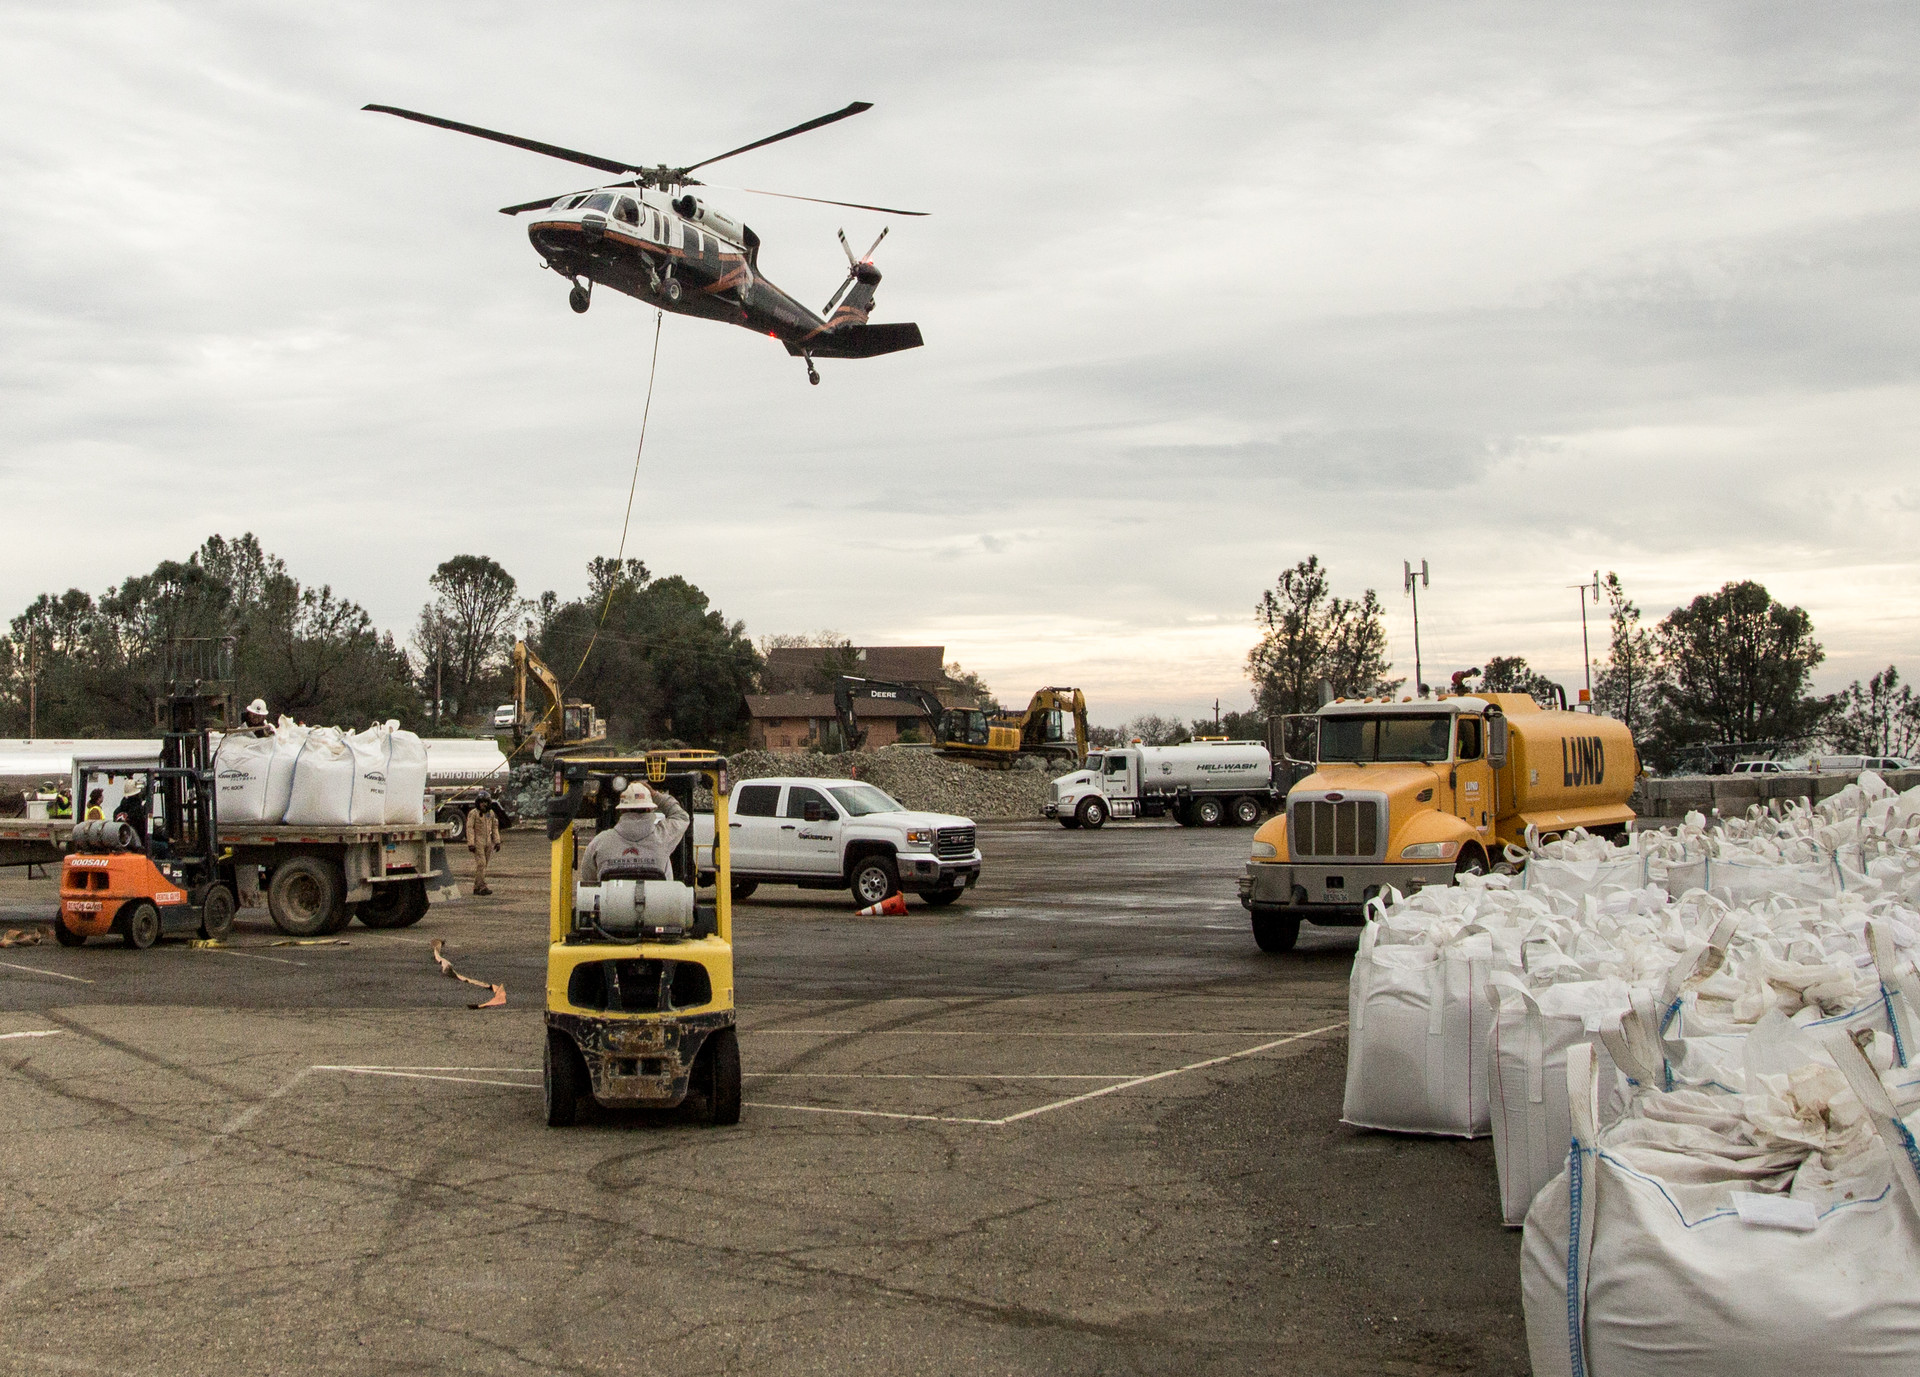 Blackhawk helicopters buzzed back and forth across the dam, carrying 4,000-pound sacks of rock and gravel.